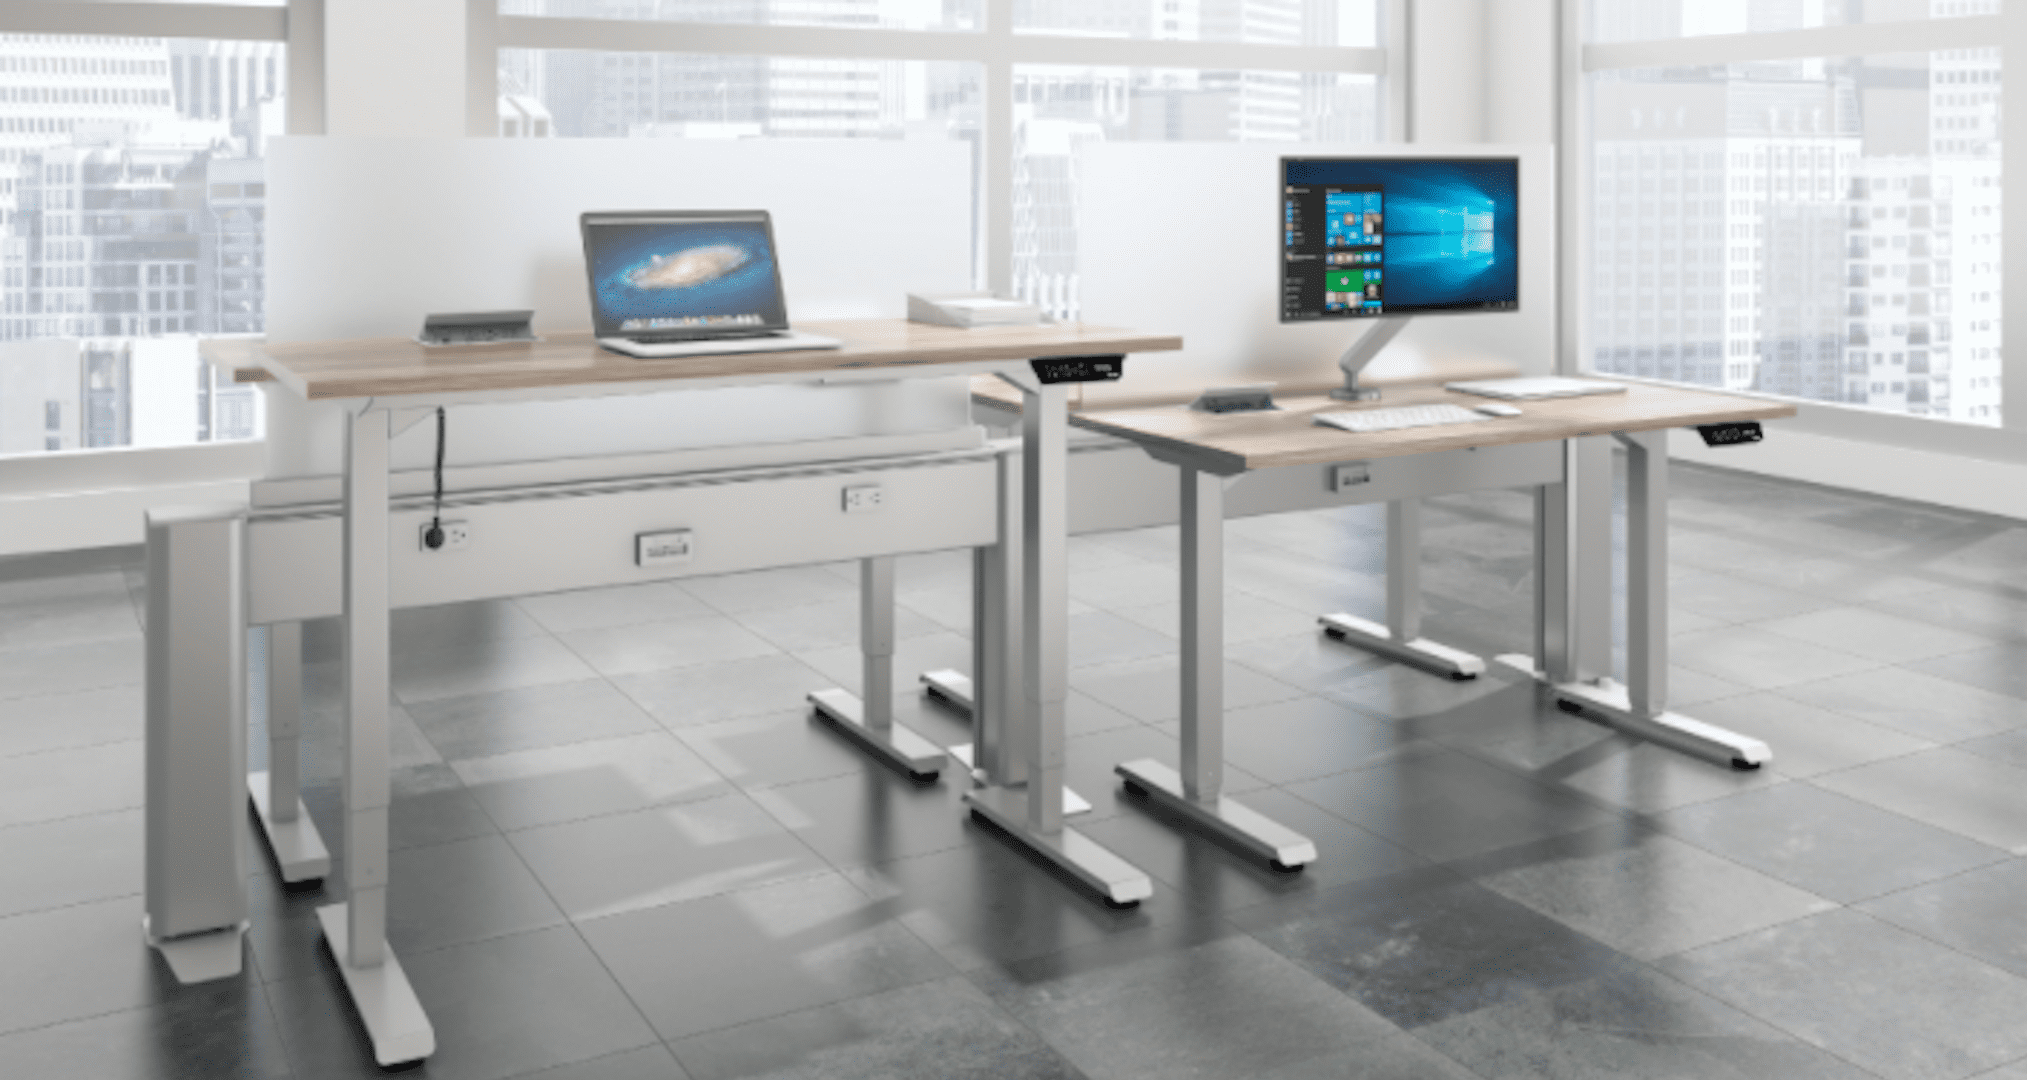 desks in room with large windows